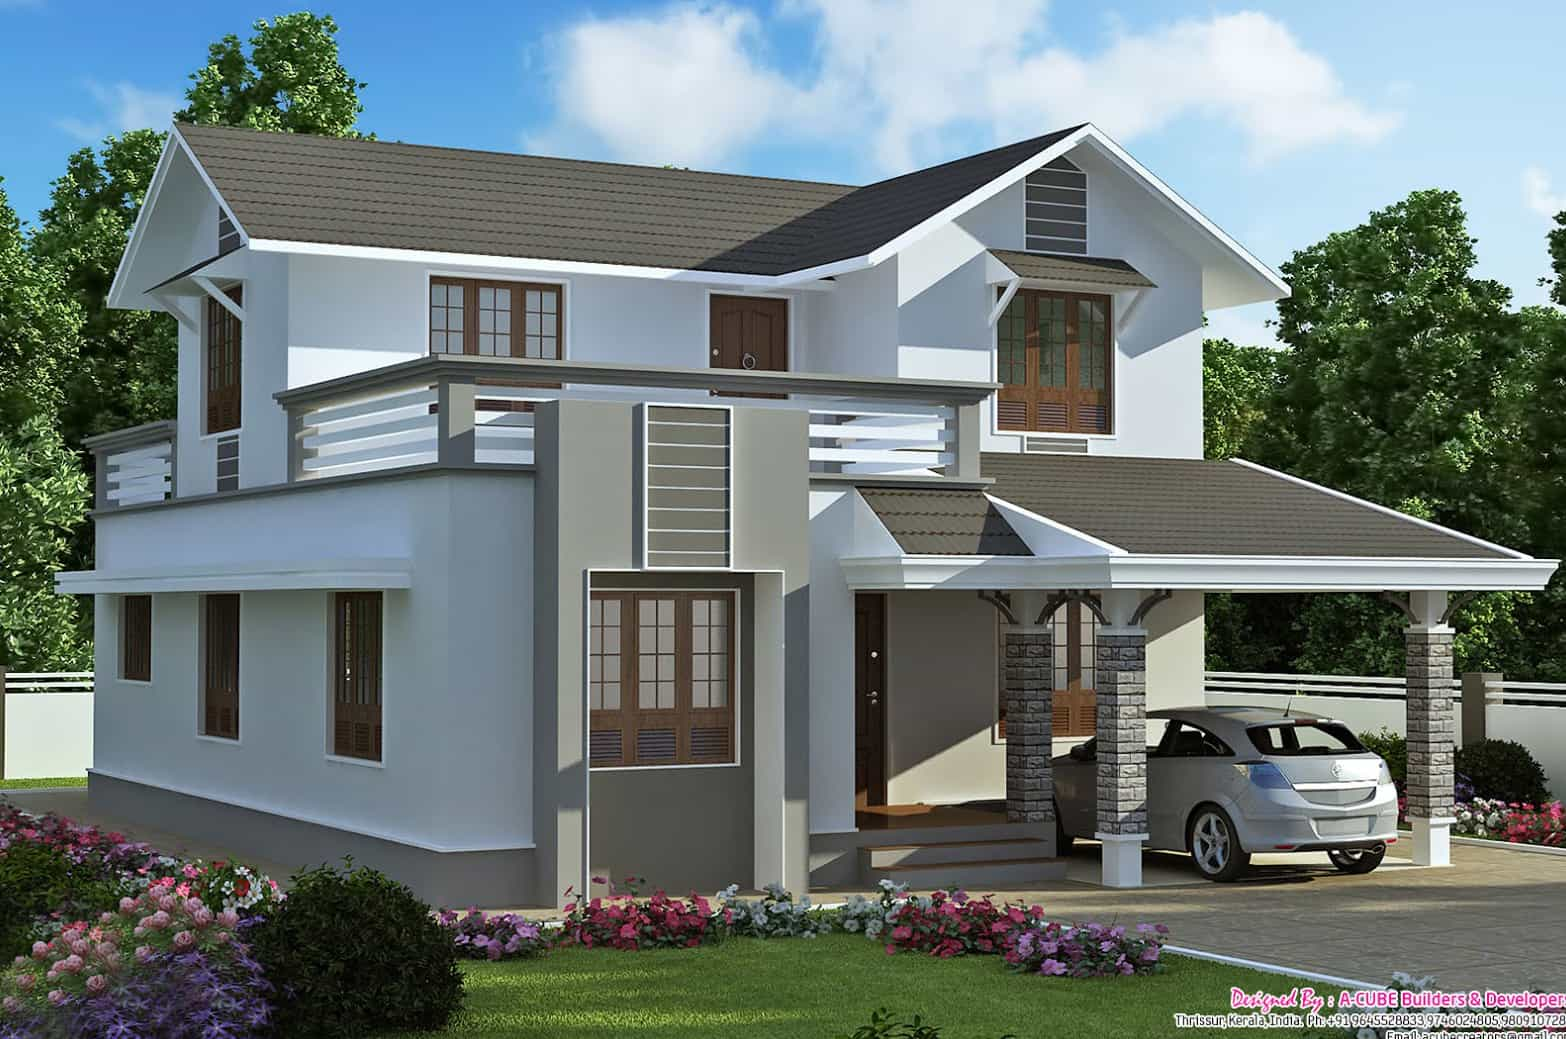 Vintage Brass Oil L  Hanoi as well 3d Floor Plans New Home Design as well Elegant Ranch Style Home Plans besides Mit Distributes 6 Water Filter Made With Local Materials To Developing Countries in addition Beautiful Double Storey House Plans. on ghana new homes